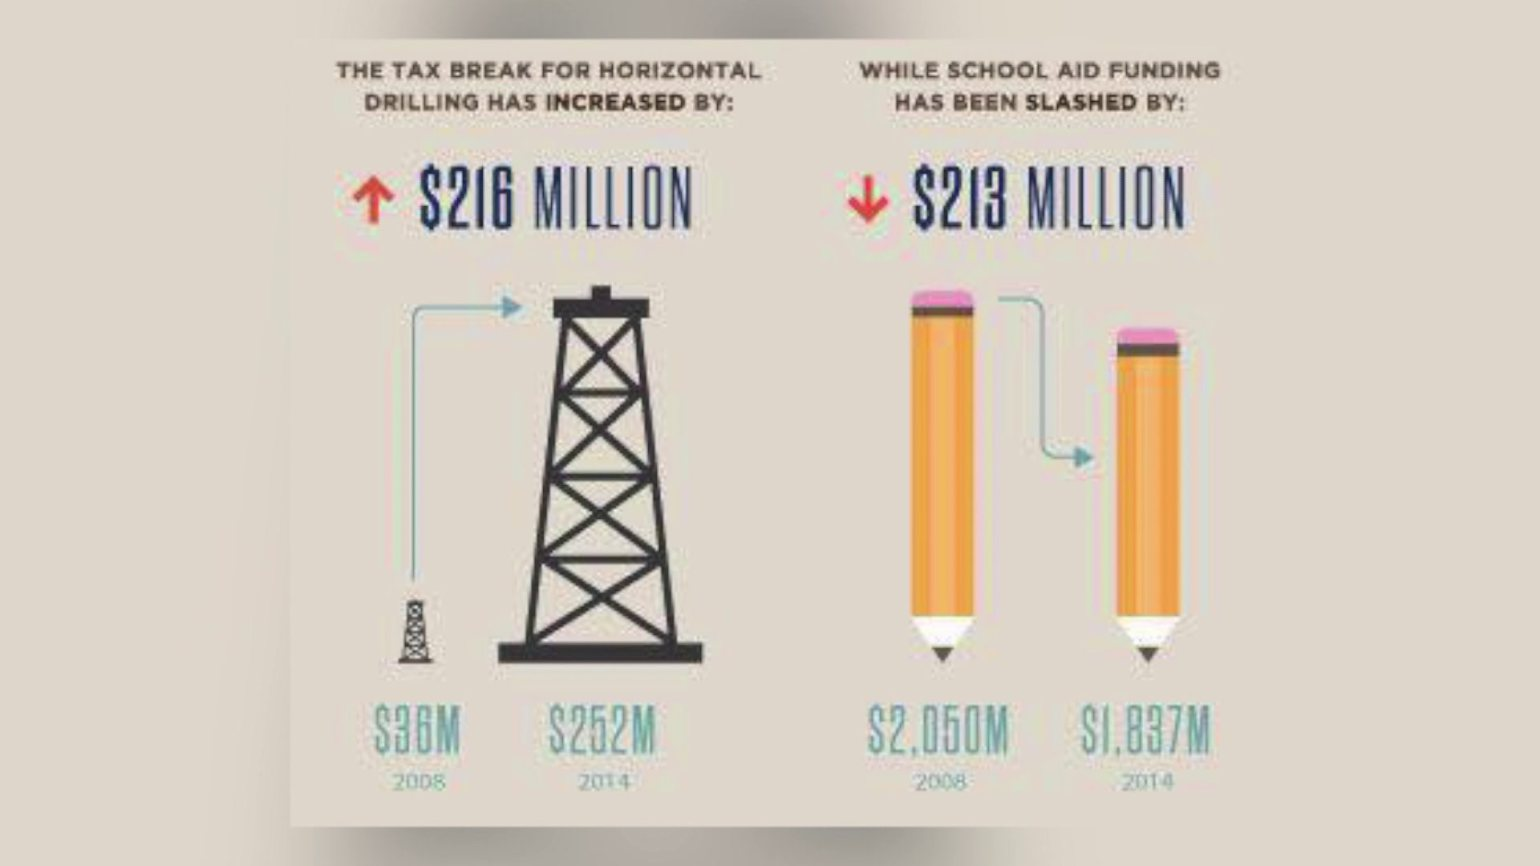 http://www.thelostogle.com/2016/01/26/this-chart-shows-why-oklahoma-schools-are-broke/